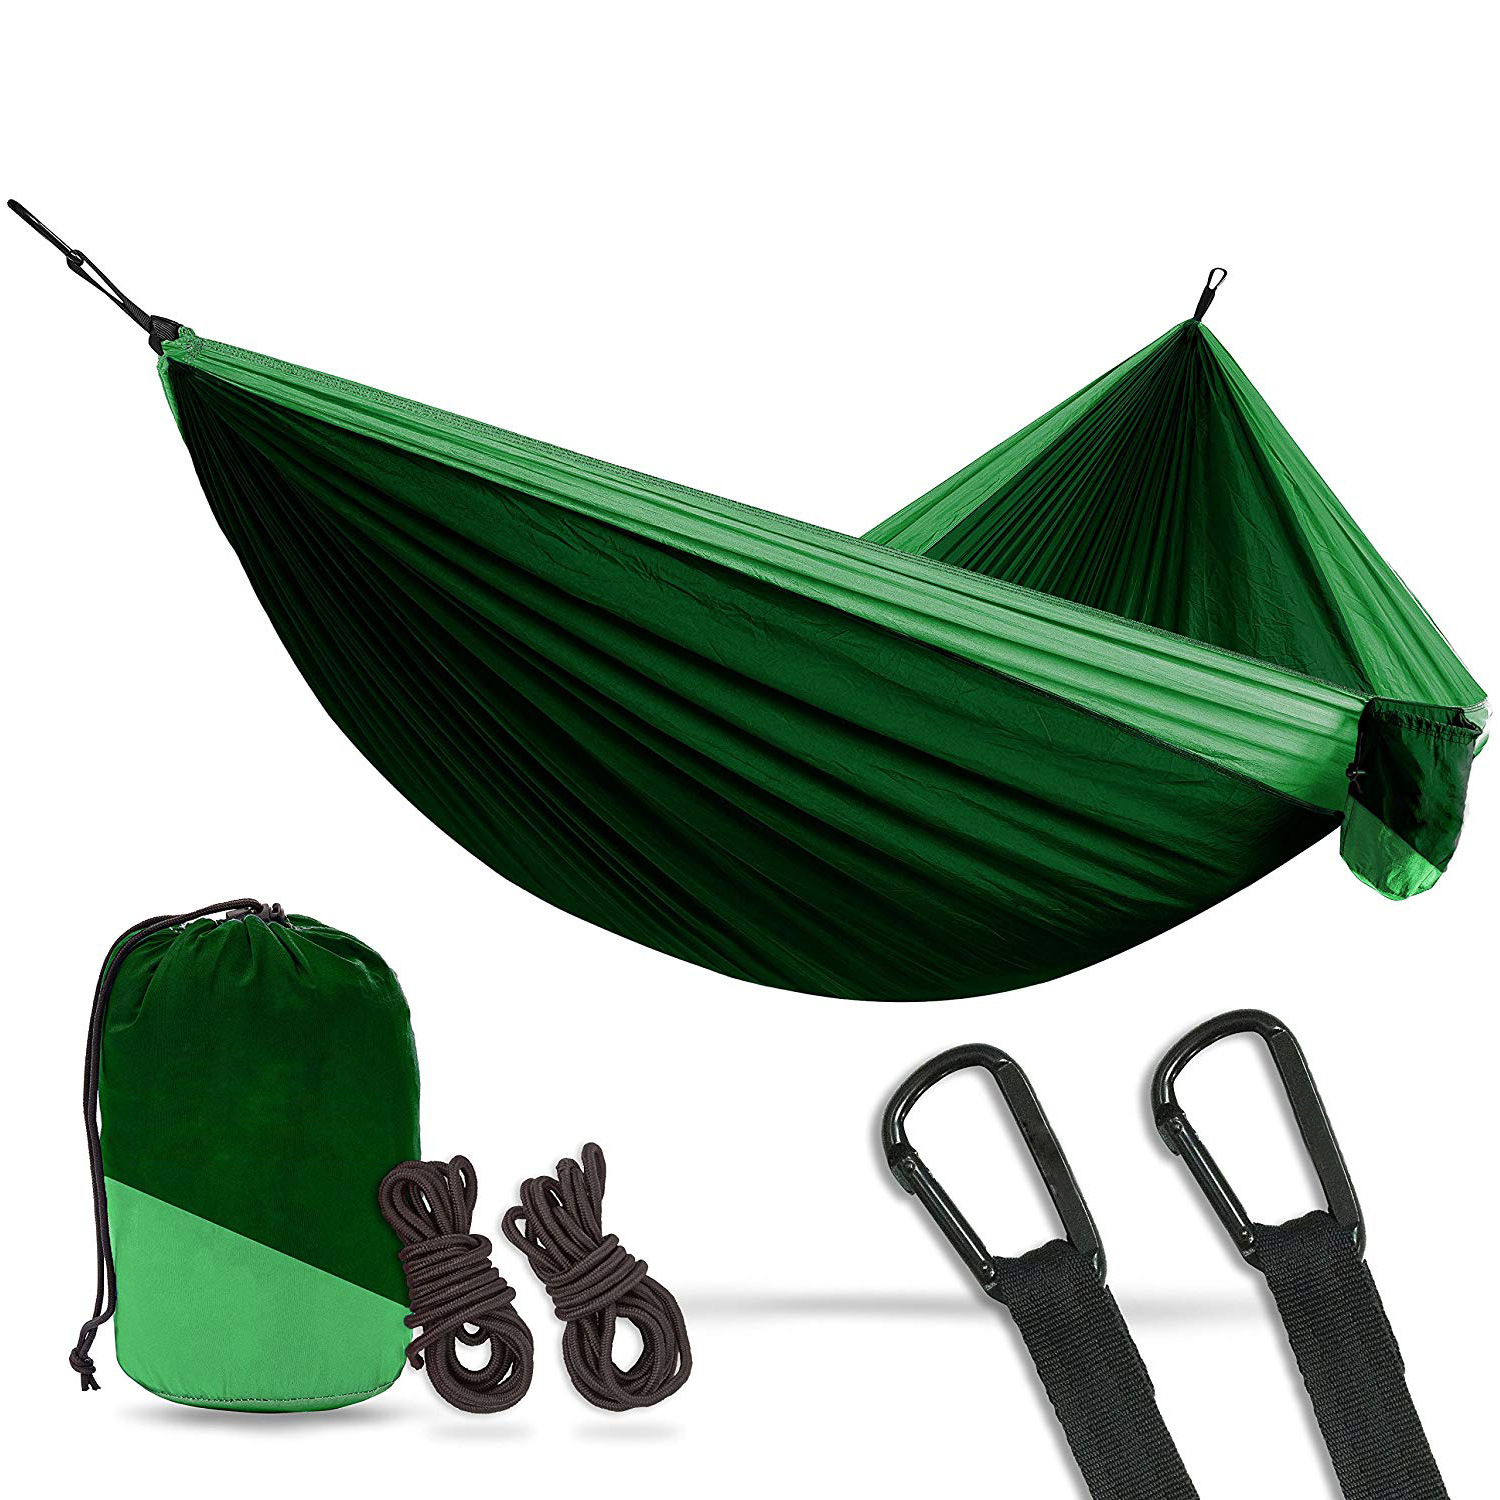 Furniture Sweet-Tempered Camping Parachute Hammock Survival Garden Outdoor Furniture Leisure Sleeping Hamaca Travel Double Hammock 2 Person 300*200cm Outdoor Furniture